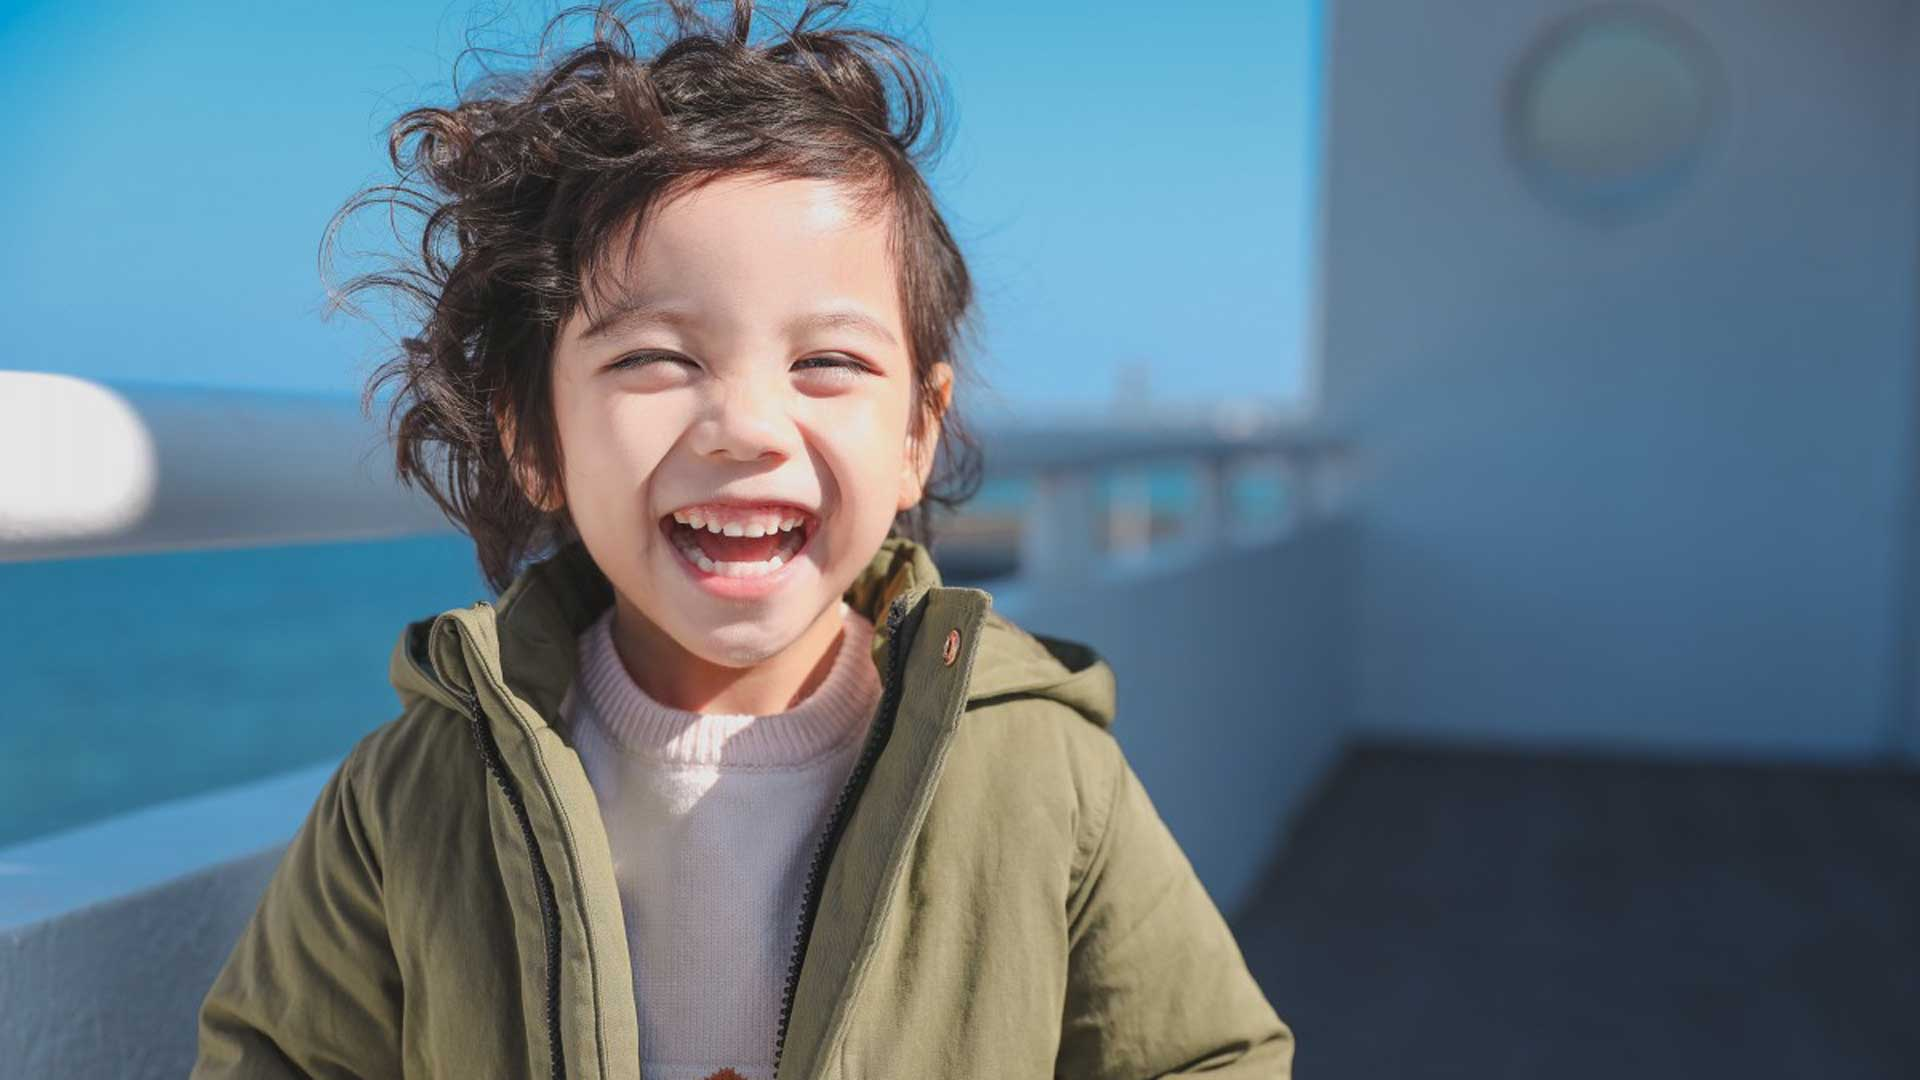 A child smiling.